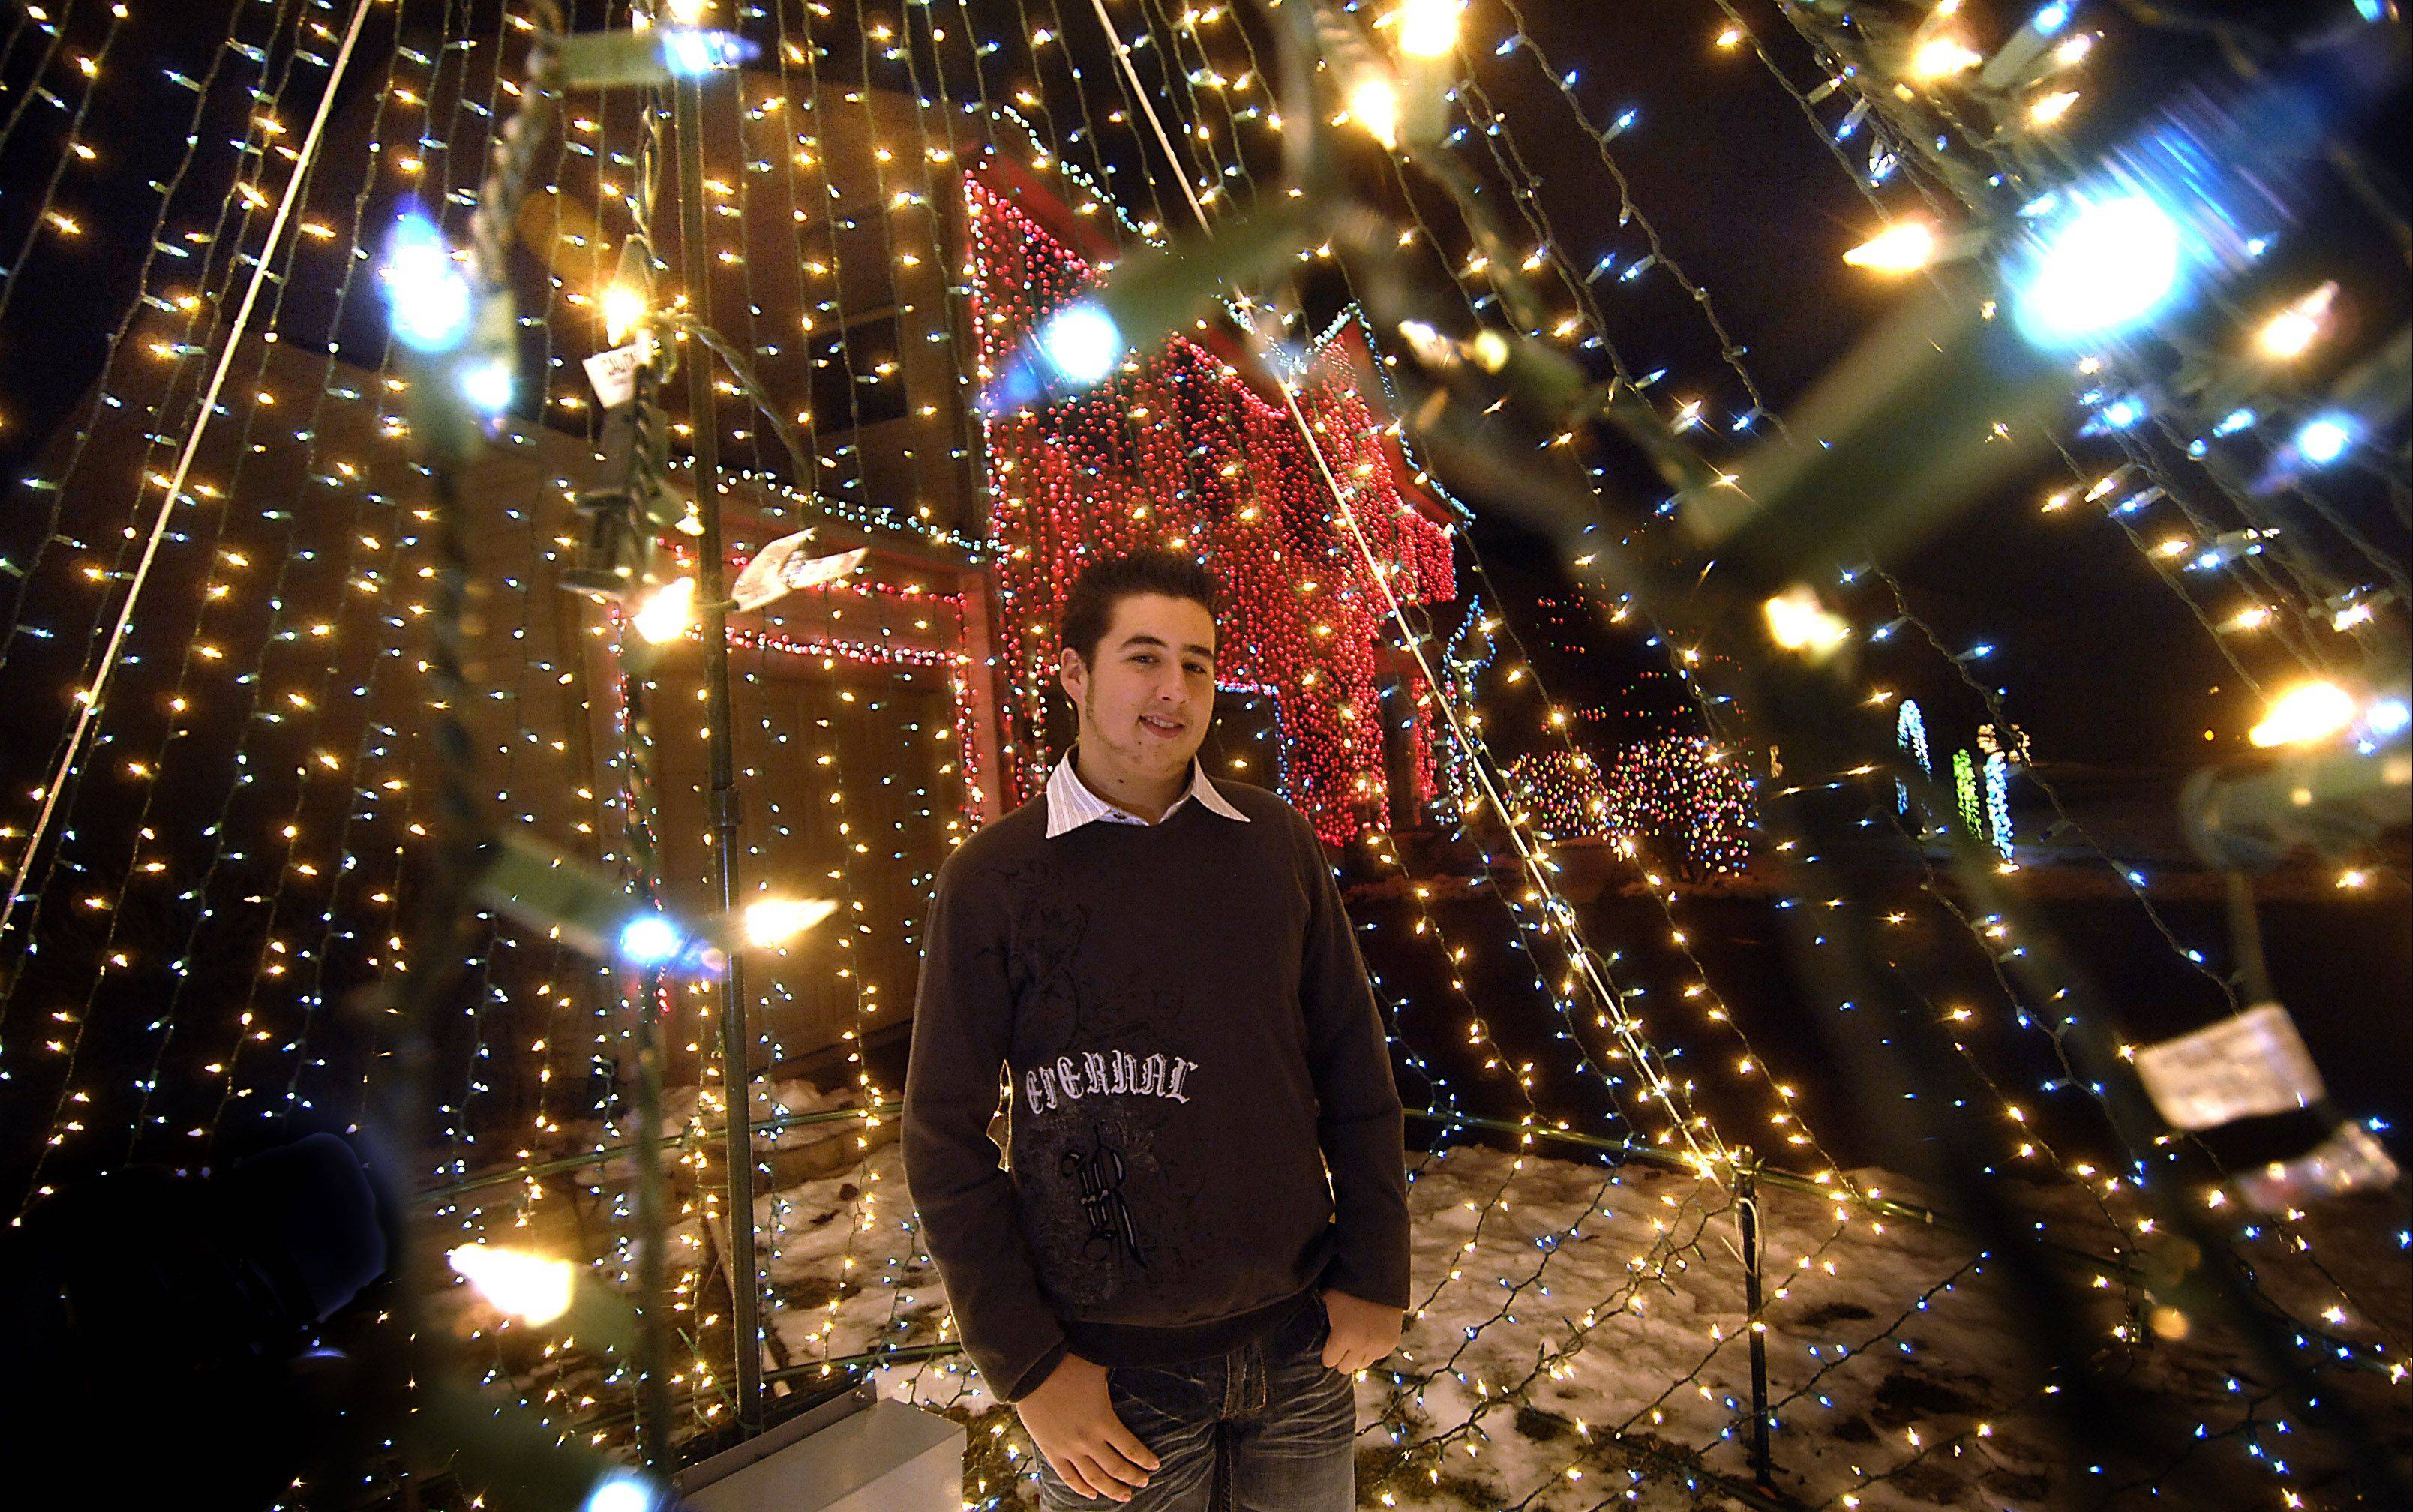 Nicholas Miele won the Daily Herald�s holiday lights contest in 2009 with his massive display at 1199 Meadow Drive in Batavia.